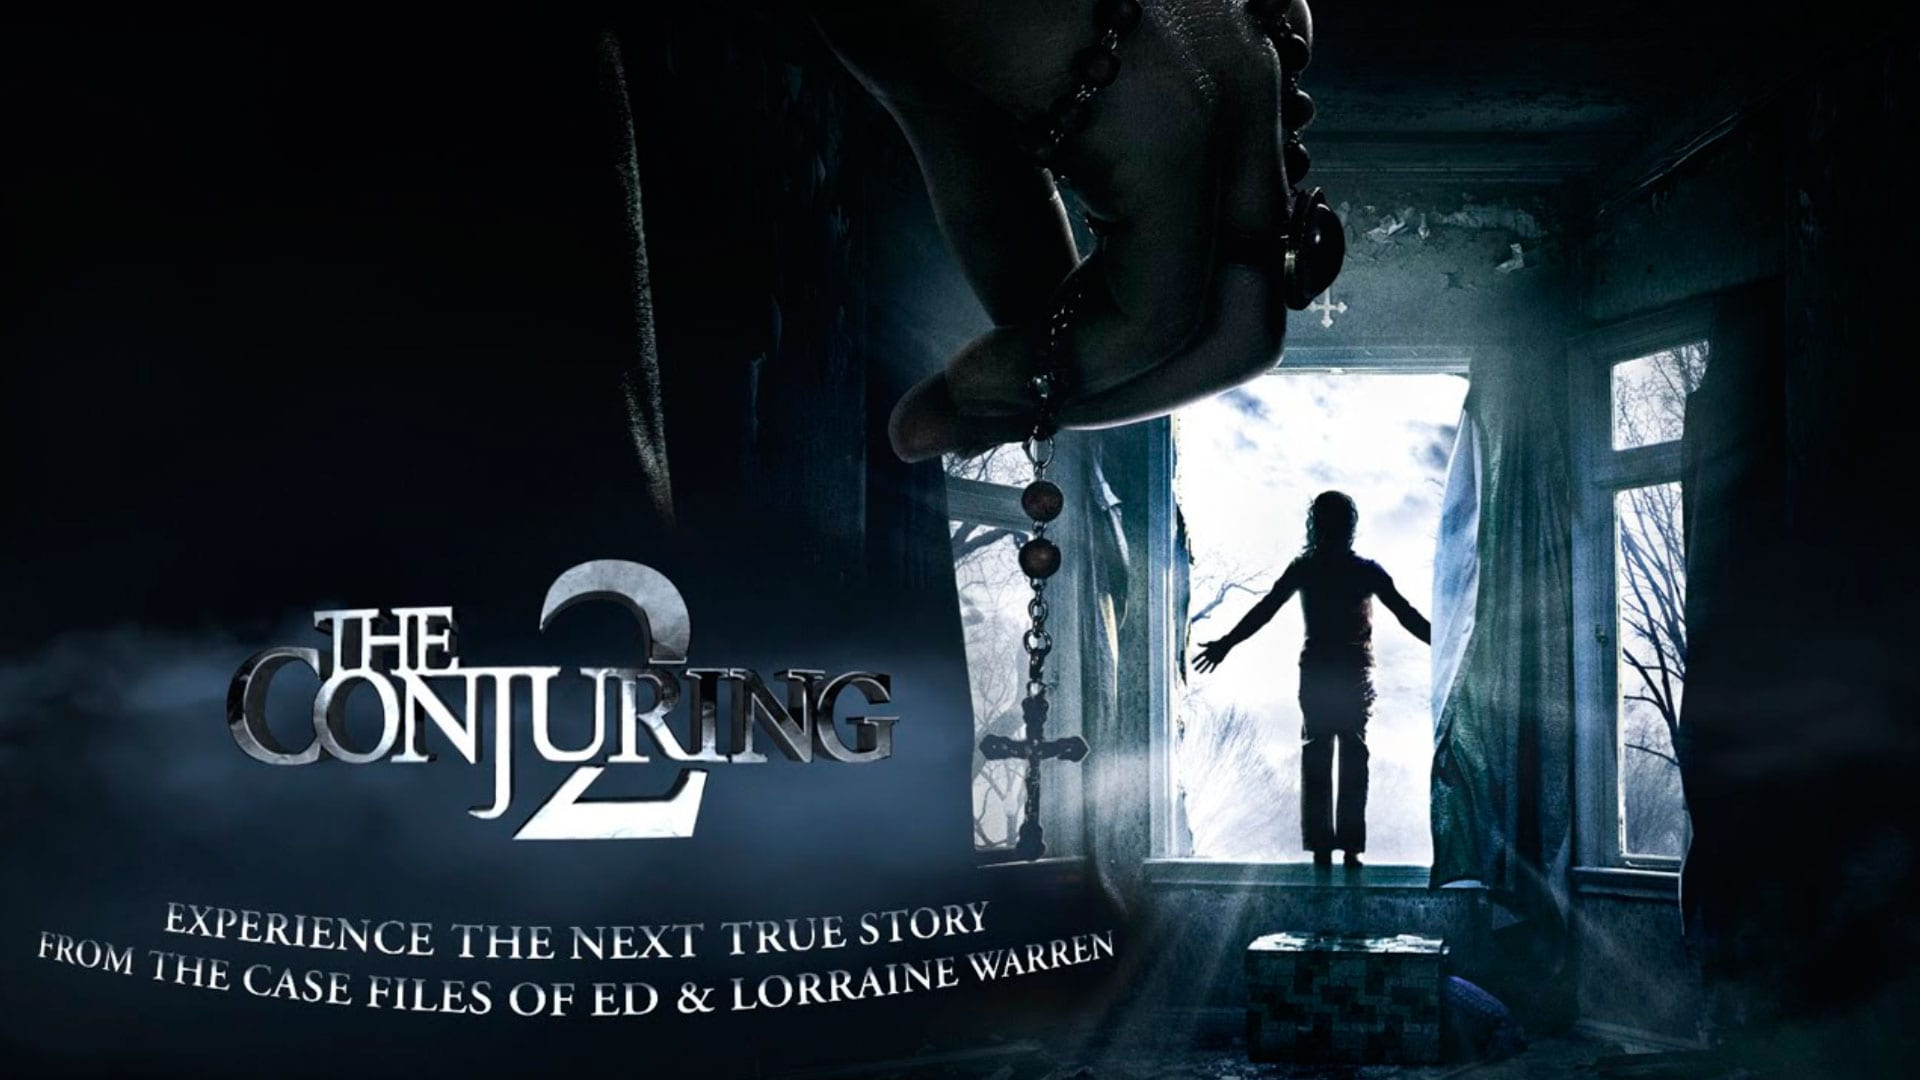 The Conjuring 2 Desktop wallpapers